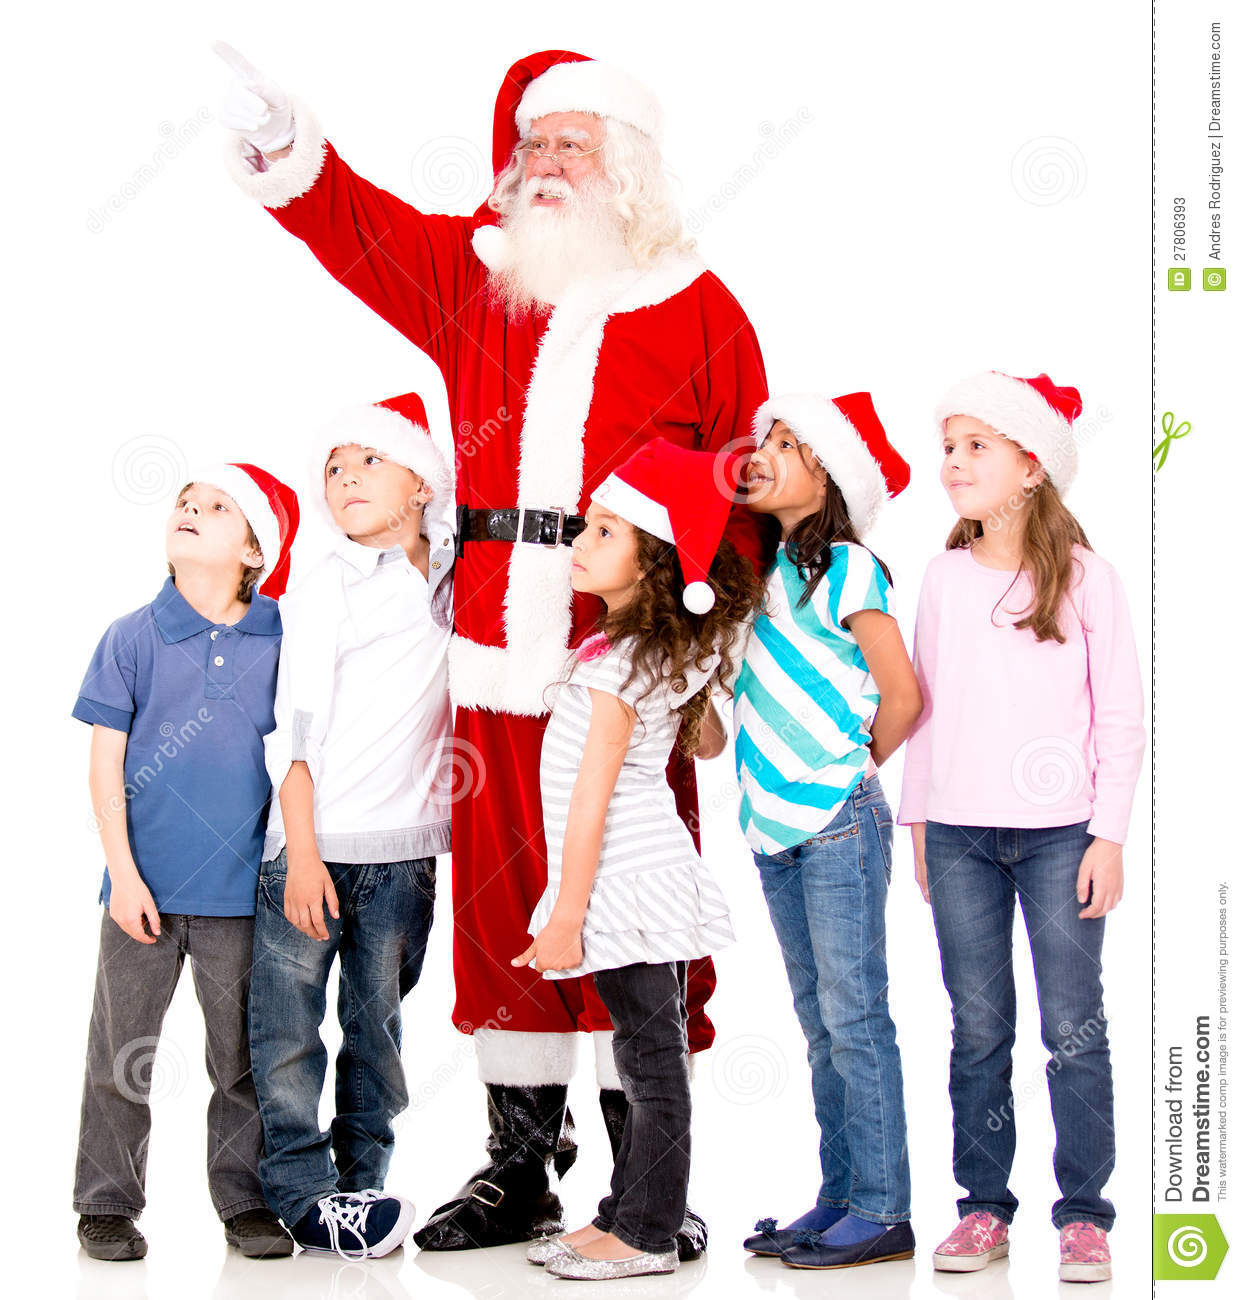 Santa Showing Something to The